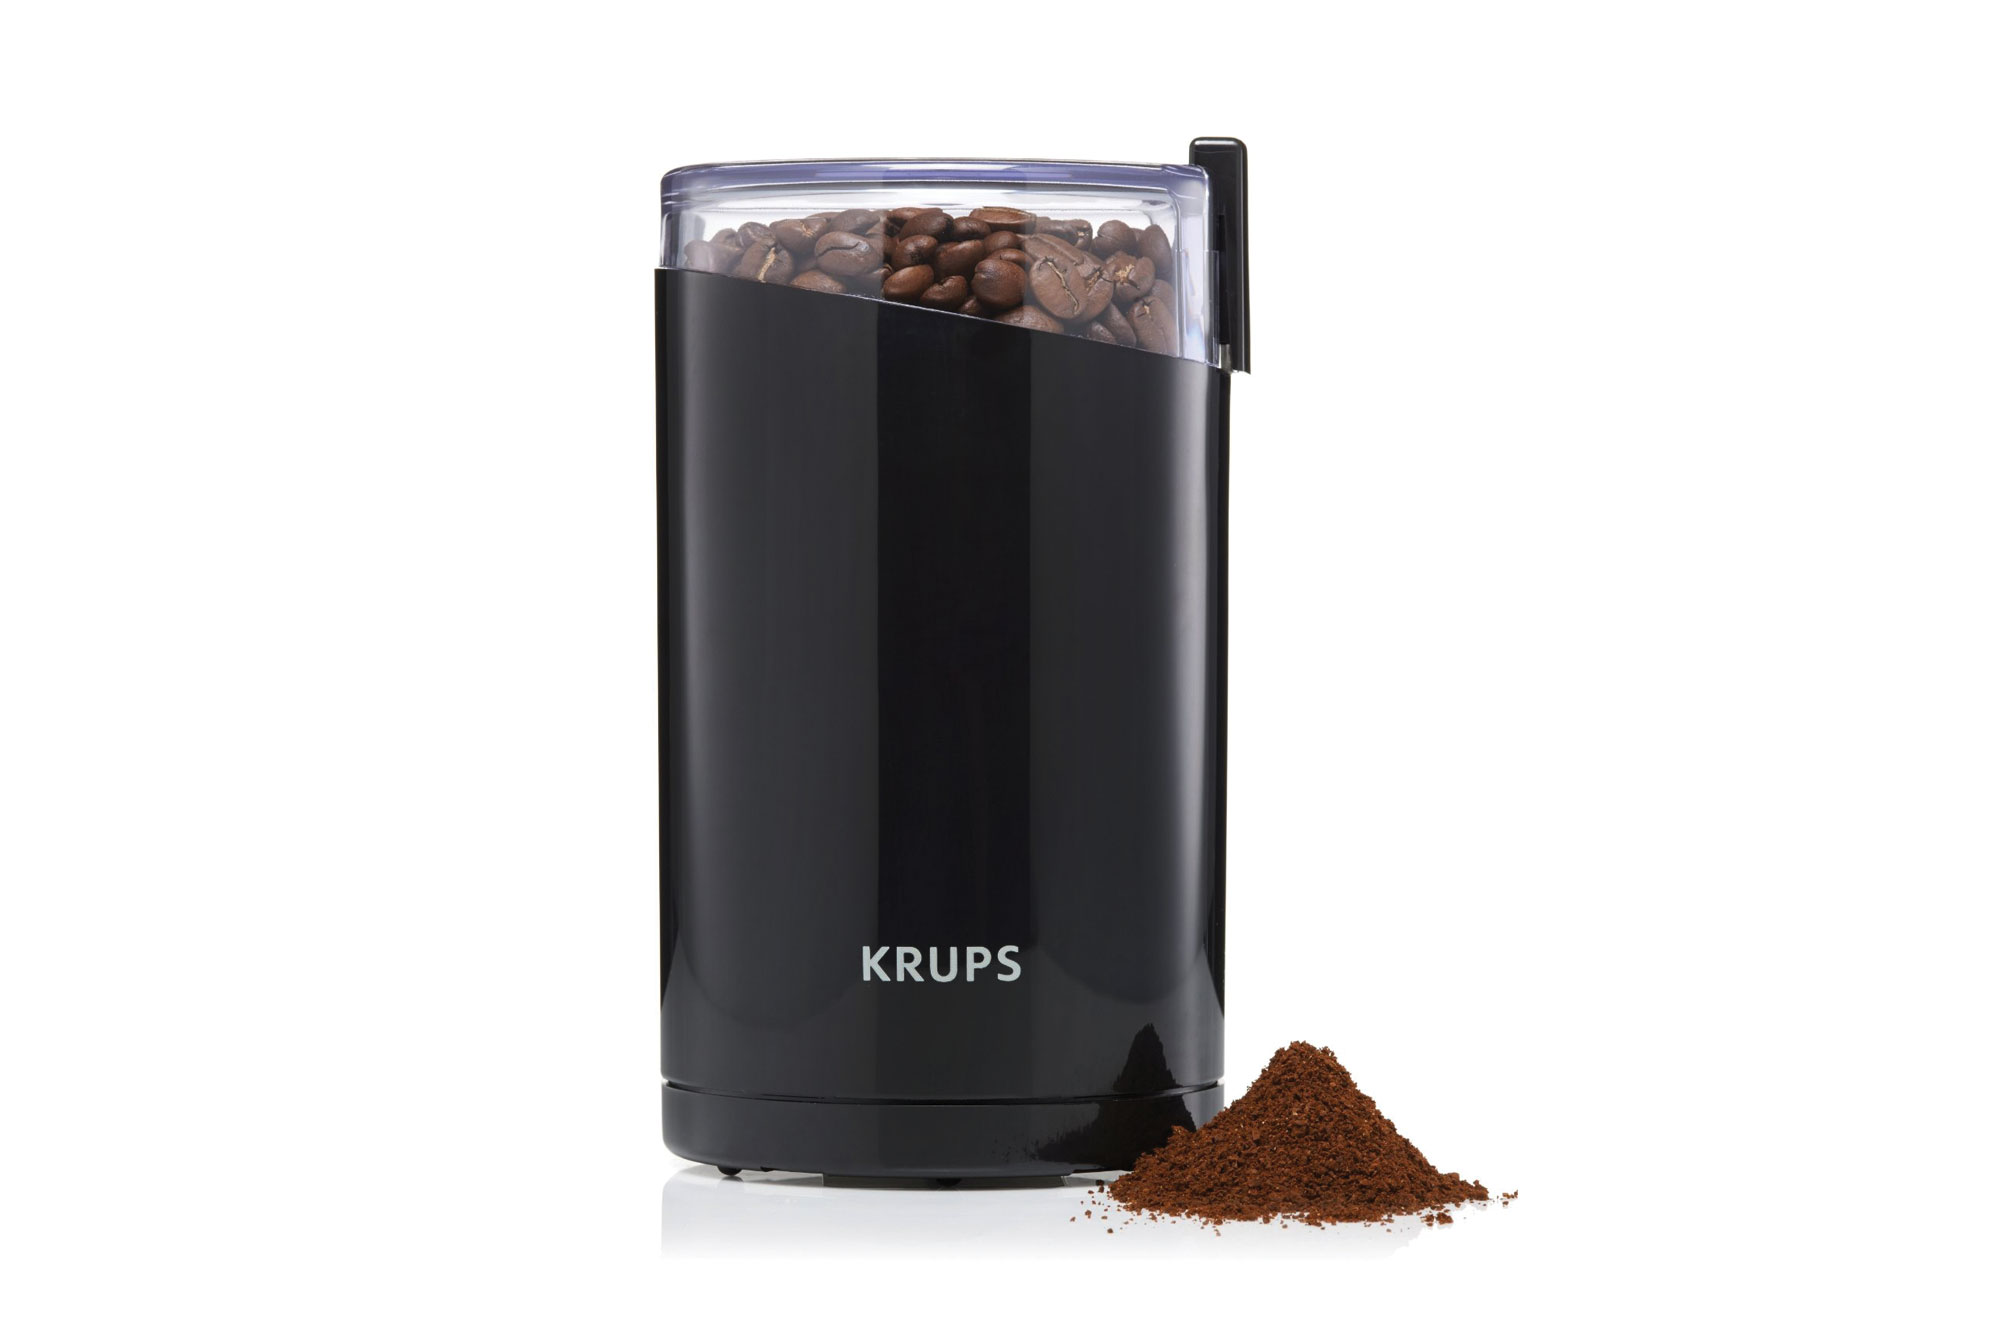 Krups Electric Coffee Amp Spice Grinder Black Cutlery And